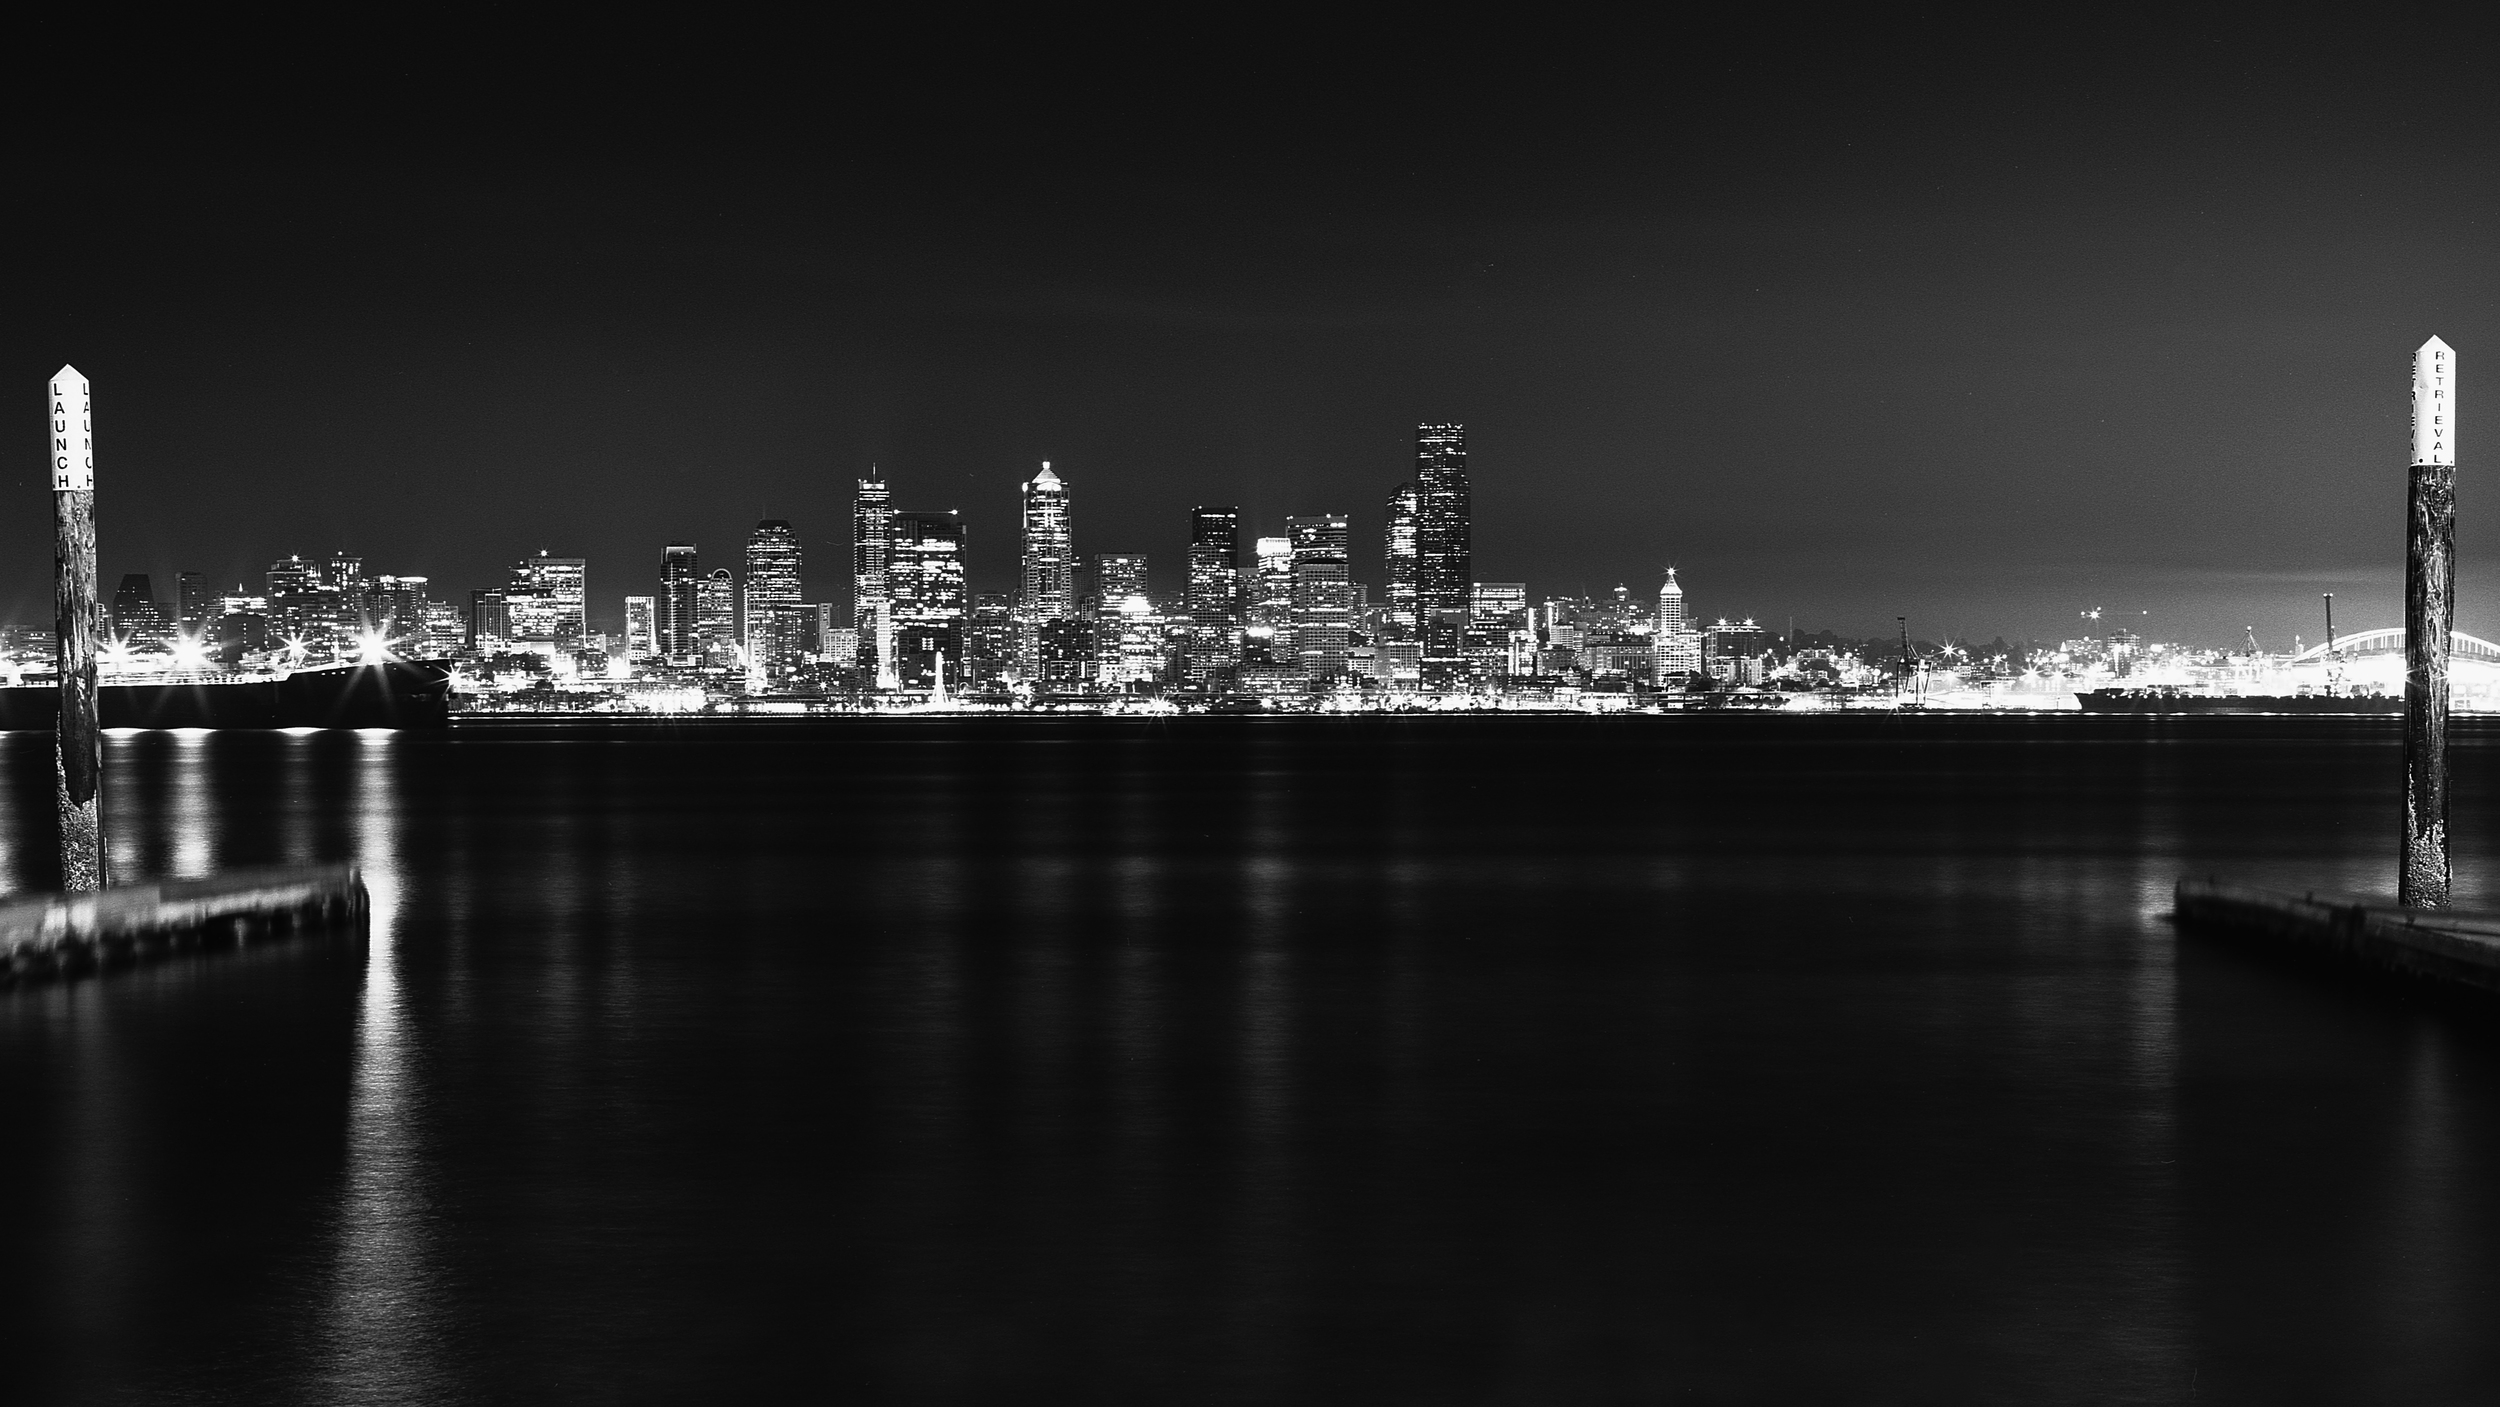 Downtown Seattle From Alki Beach - Shot with Mamiya RB67 + Fujifilm Acros Neopan 100 film developed with Ilford Ilfosol 3.